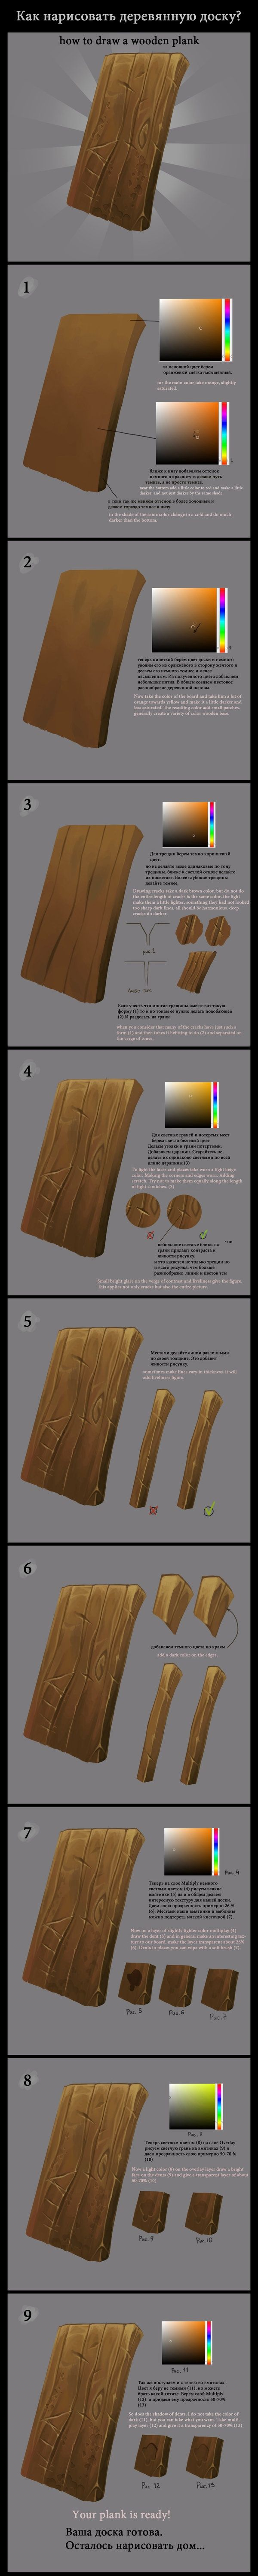 How to draw wooden plank? by ~Gimaldinov. Use this as an example of a wooden wall(s) or maybe a sheild?